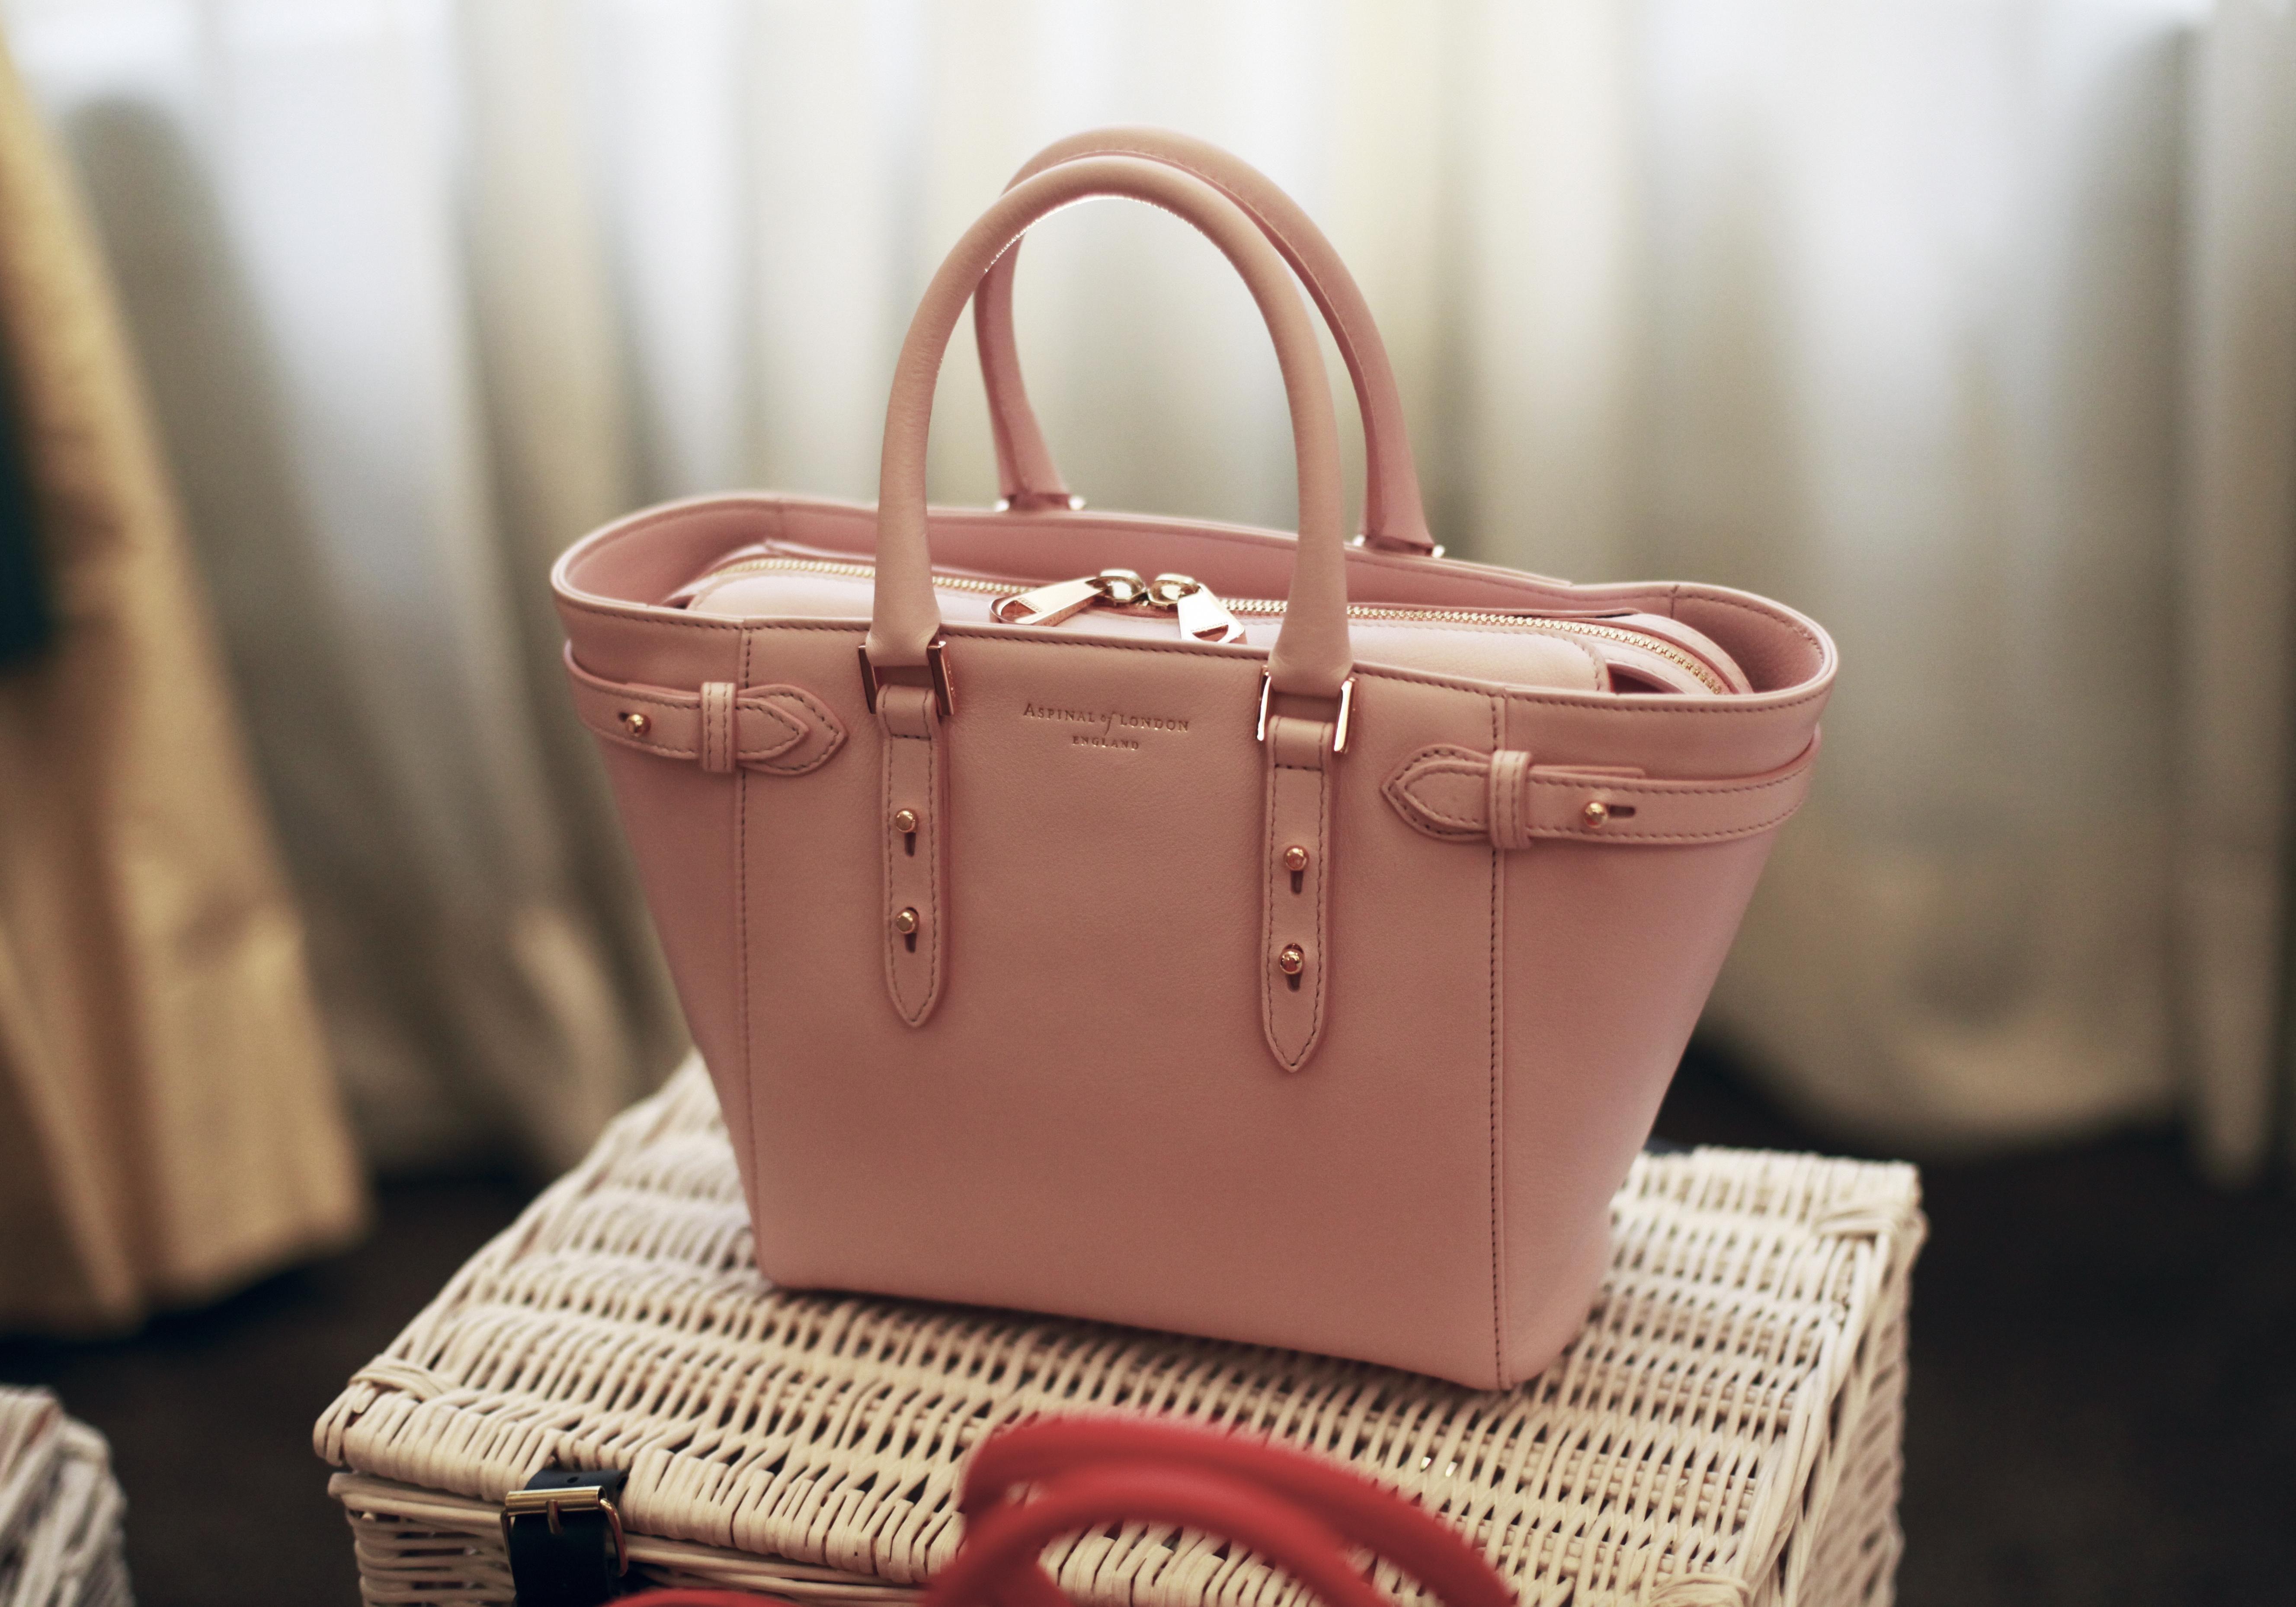 Mini Marylebone In Blush Pink Hand Bags Bag